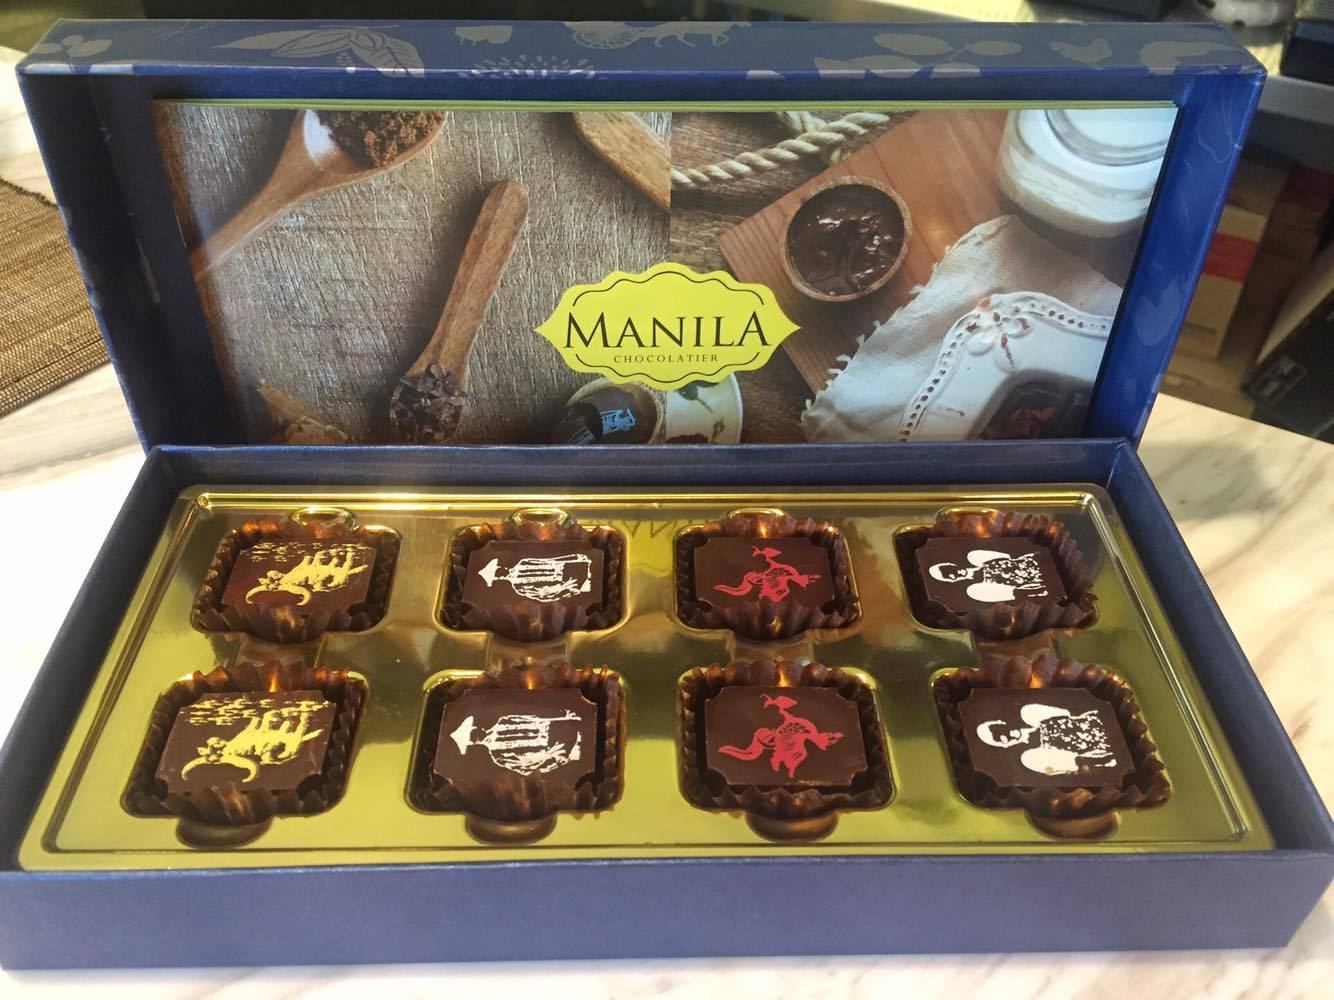 The best chocolates for me from the Philippines-- and they make excellent pasalubong and gifts from the Philippines! Manila Chocolatier's 8-piece box retails for PHP650